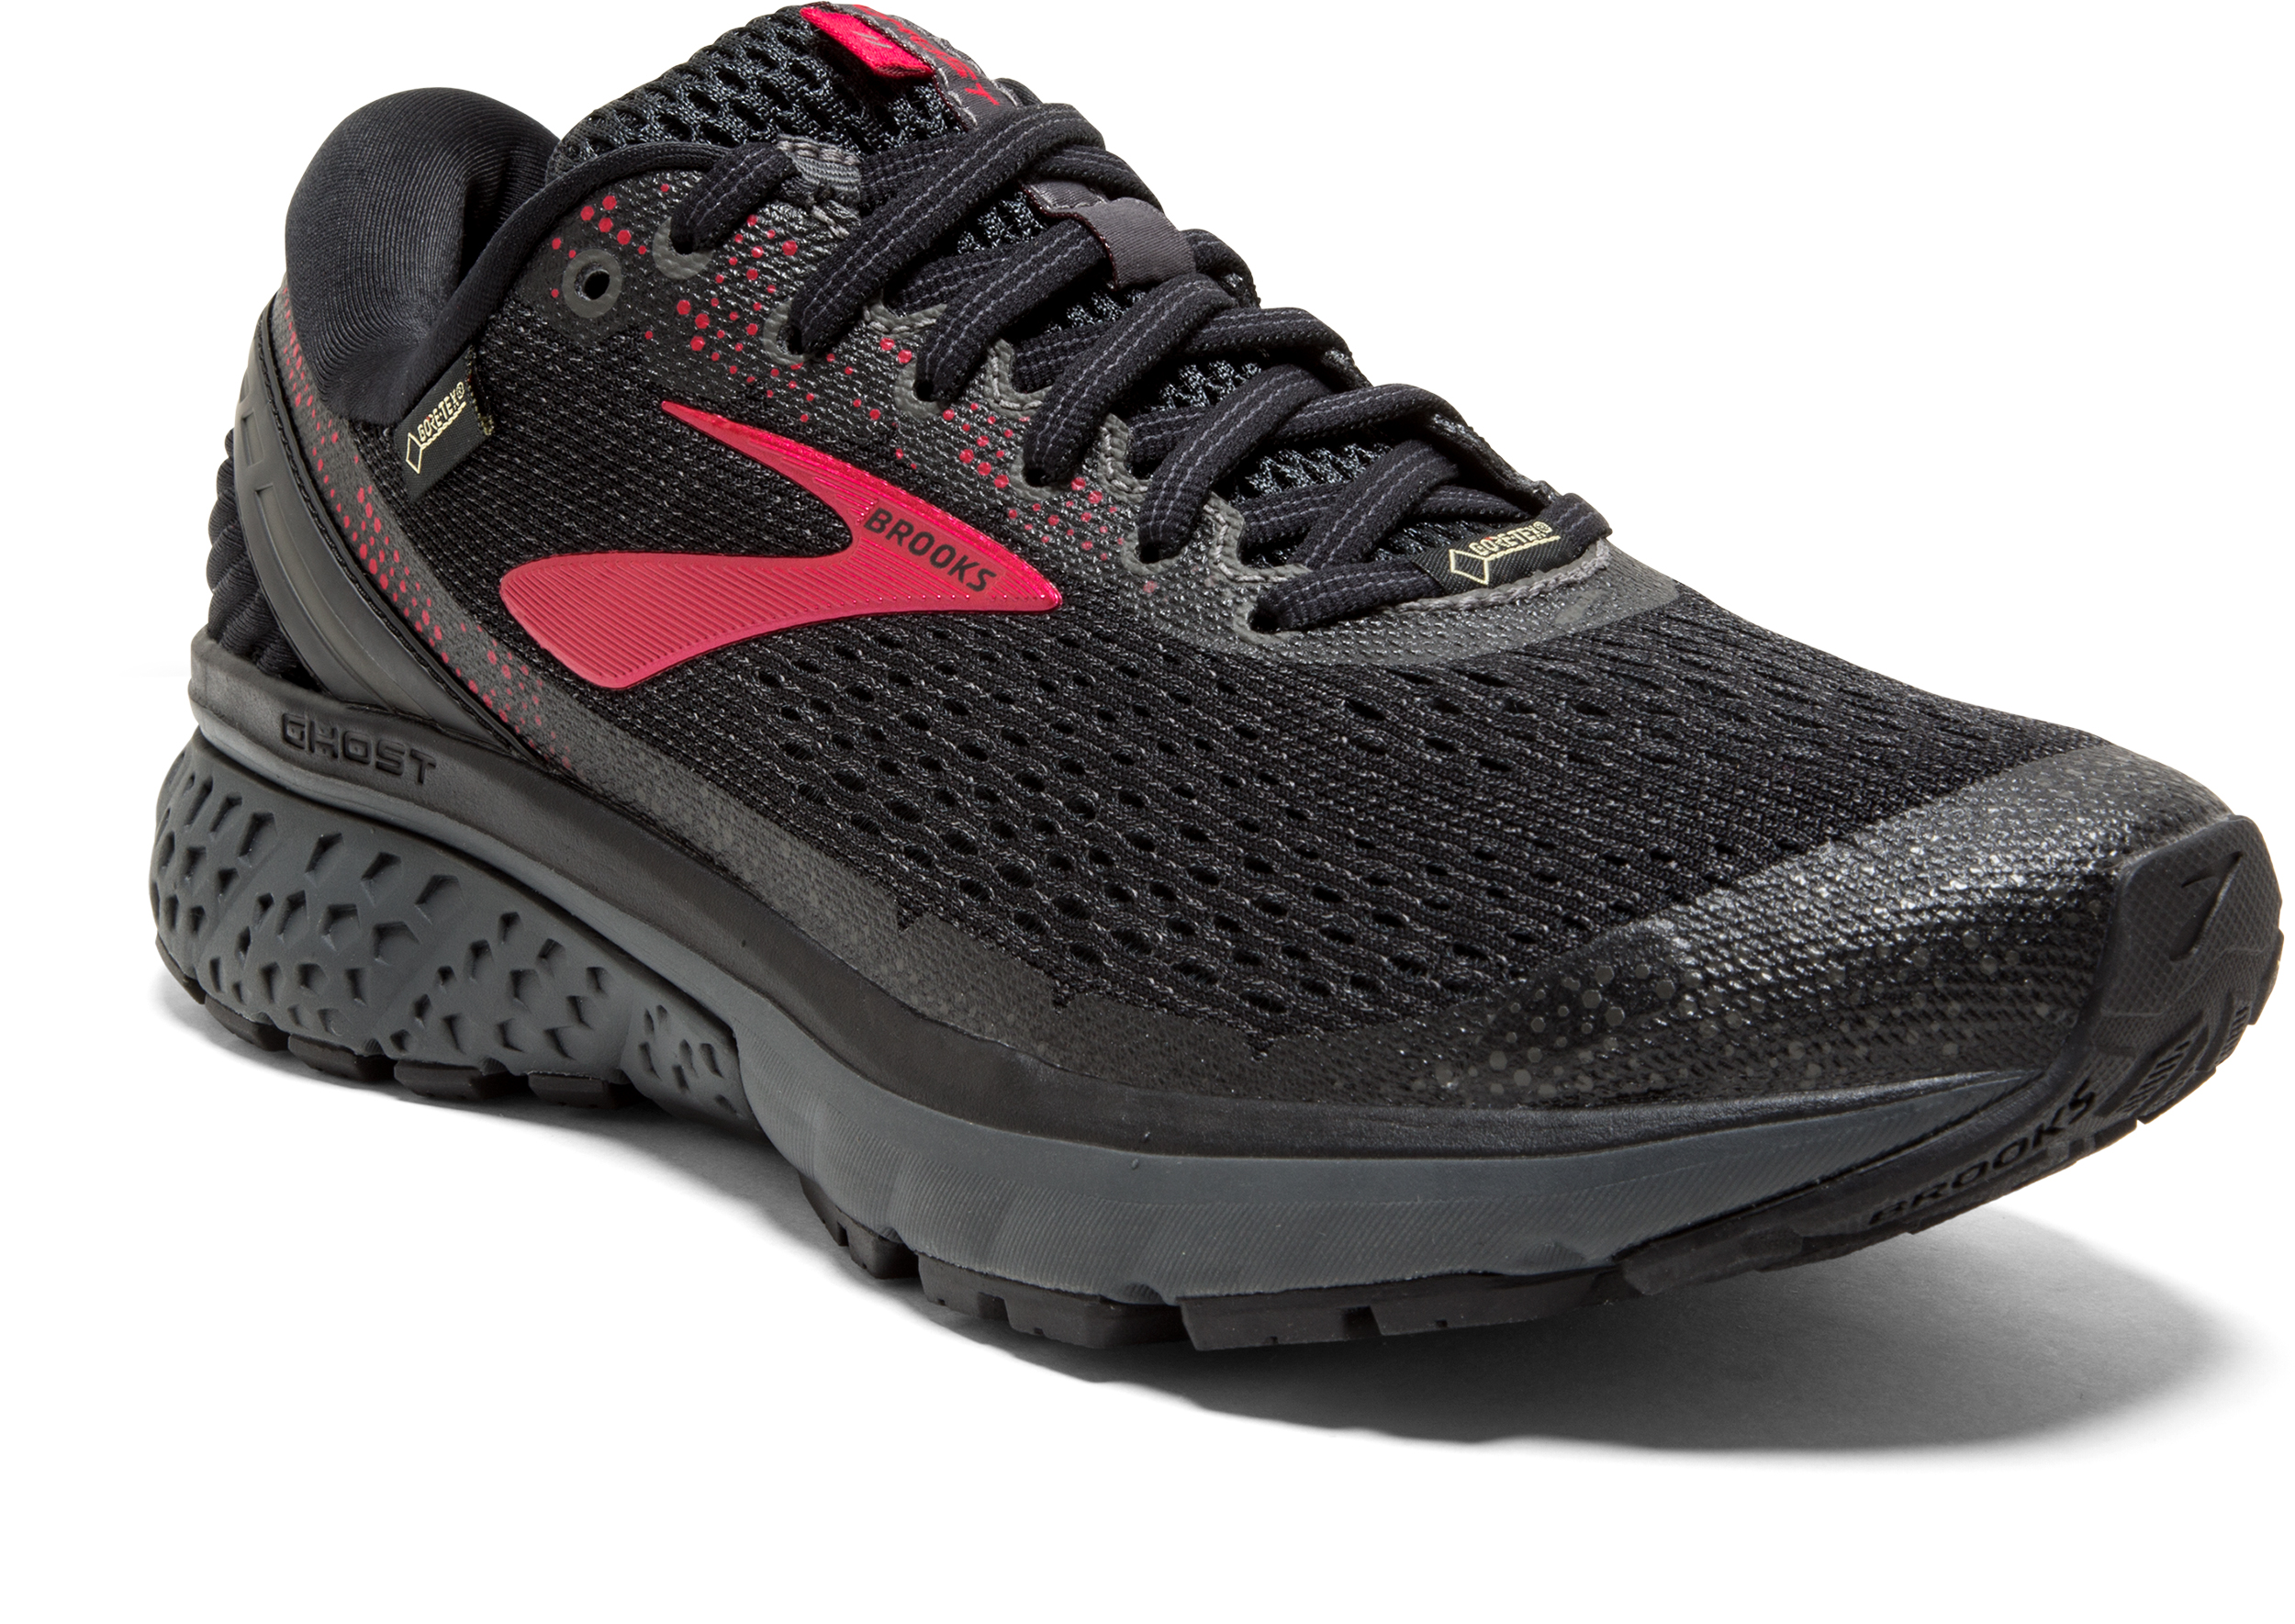 0aed62b692113 Brooks Running shoes